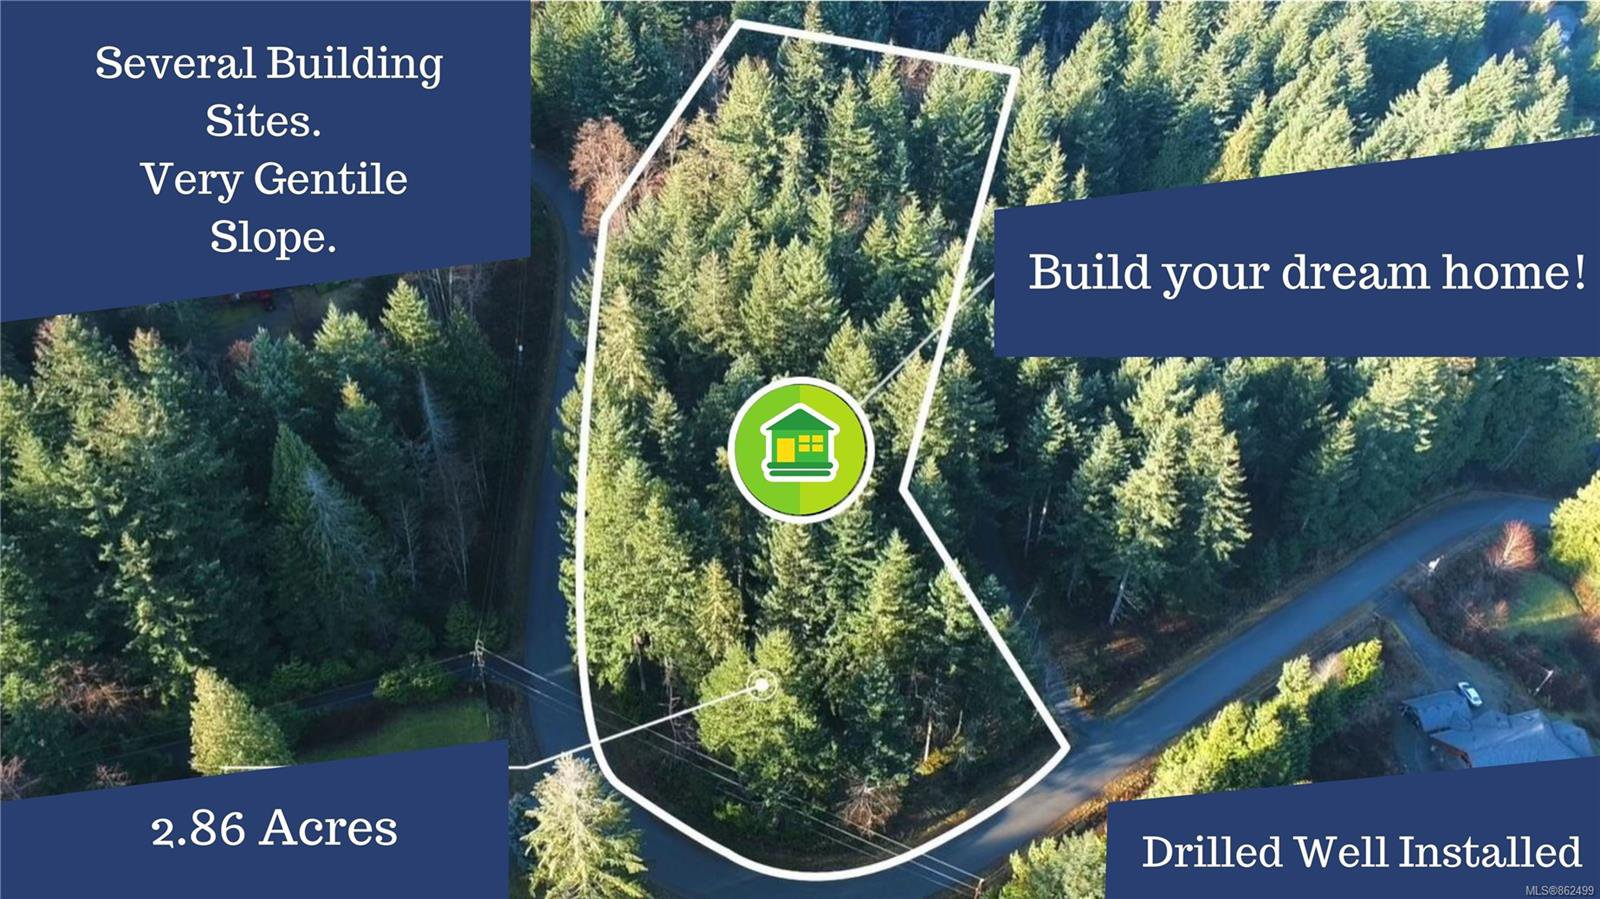 Main Photo: Lot B Ridgeway Rd in : Na North Jingle Pot Land for sale (Nanaimo)  : MLS®# 862499